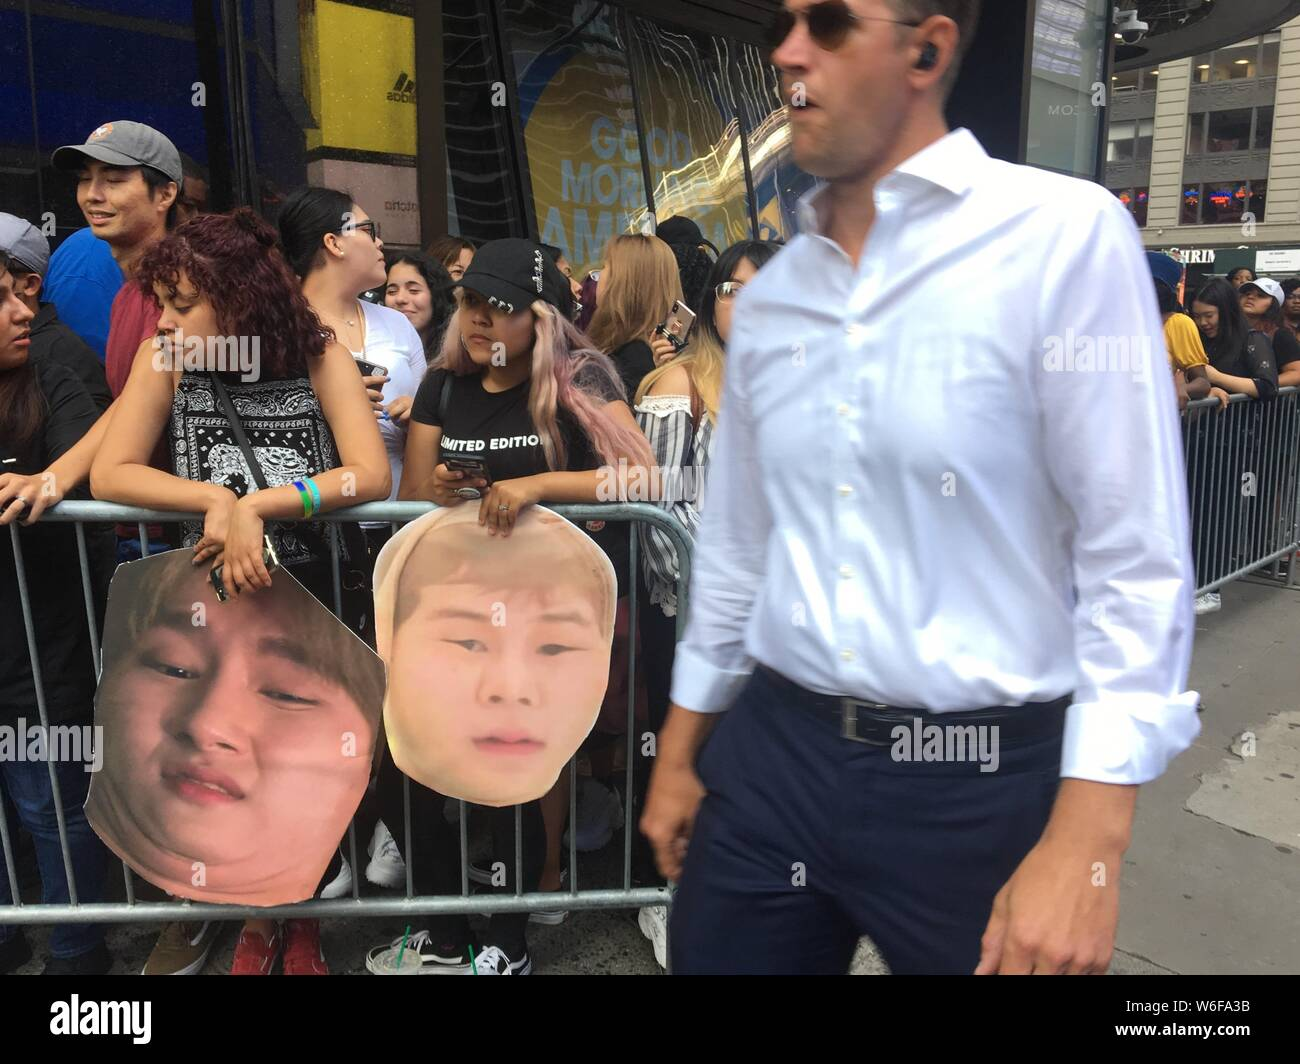 Kpop Stock Photos & Kpop Stock Images - Alamy